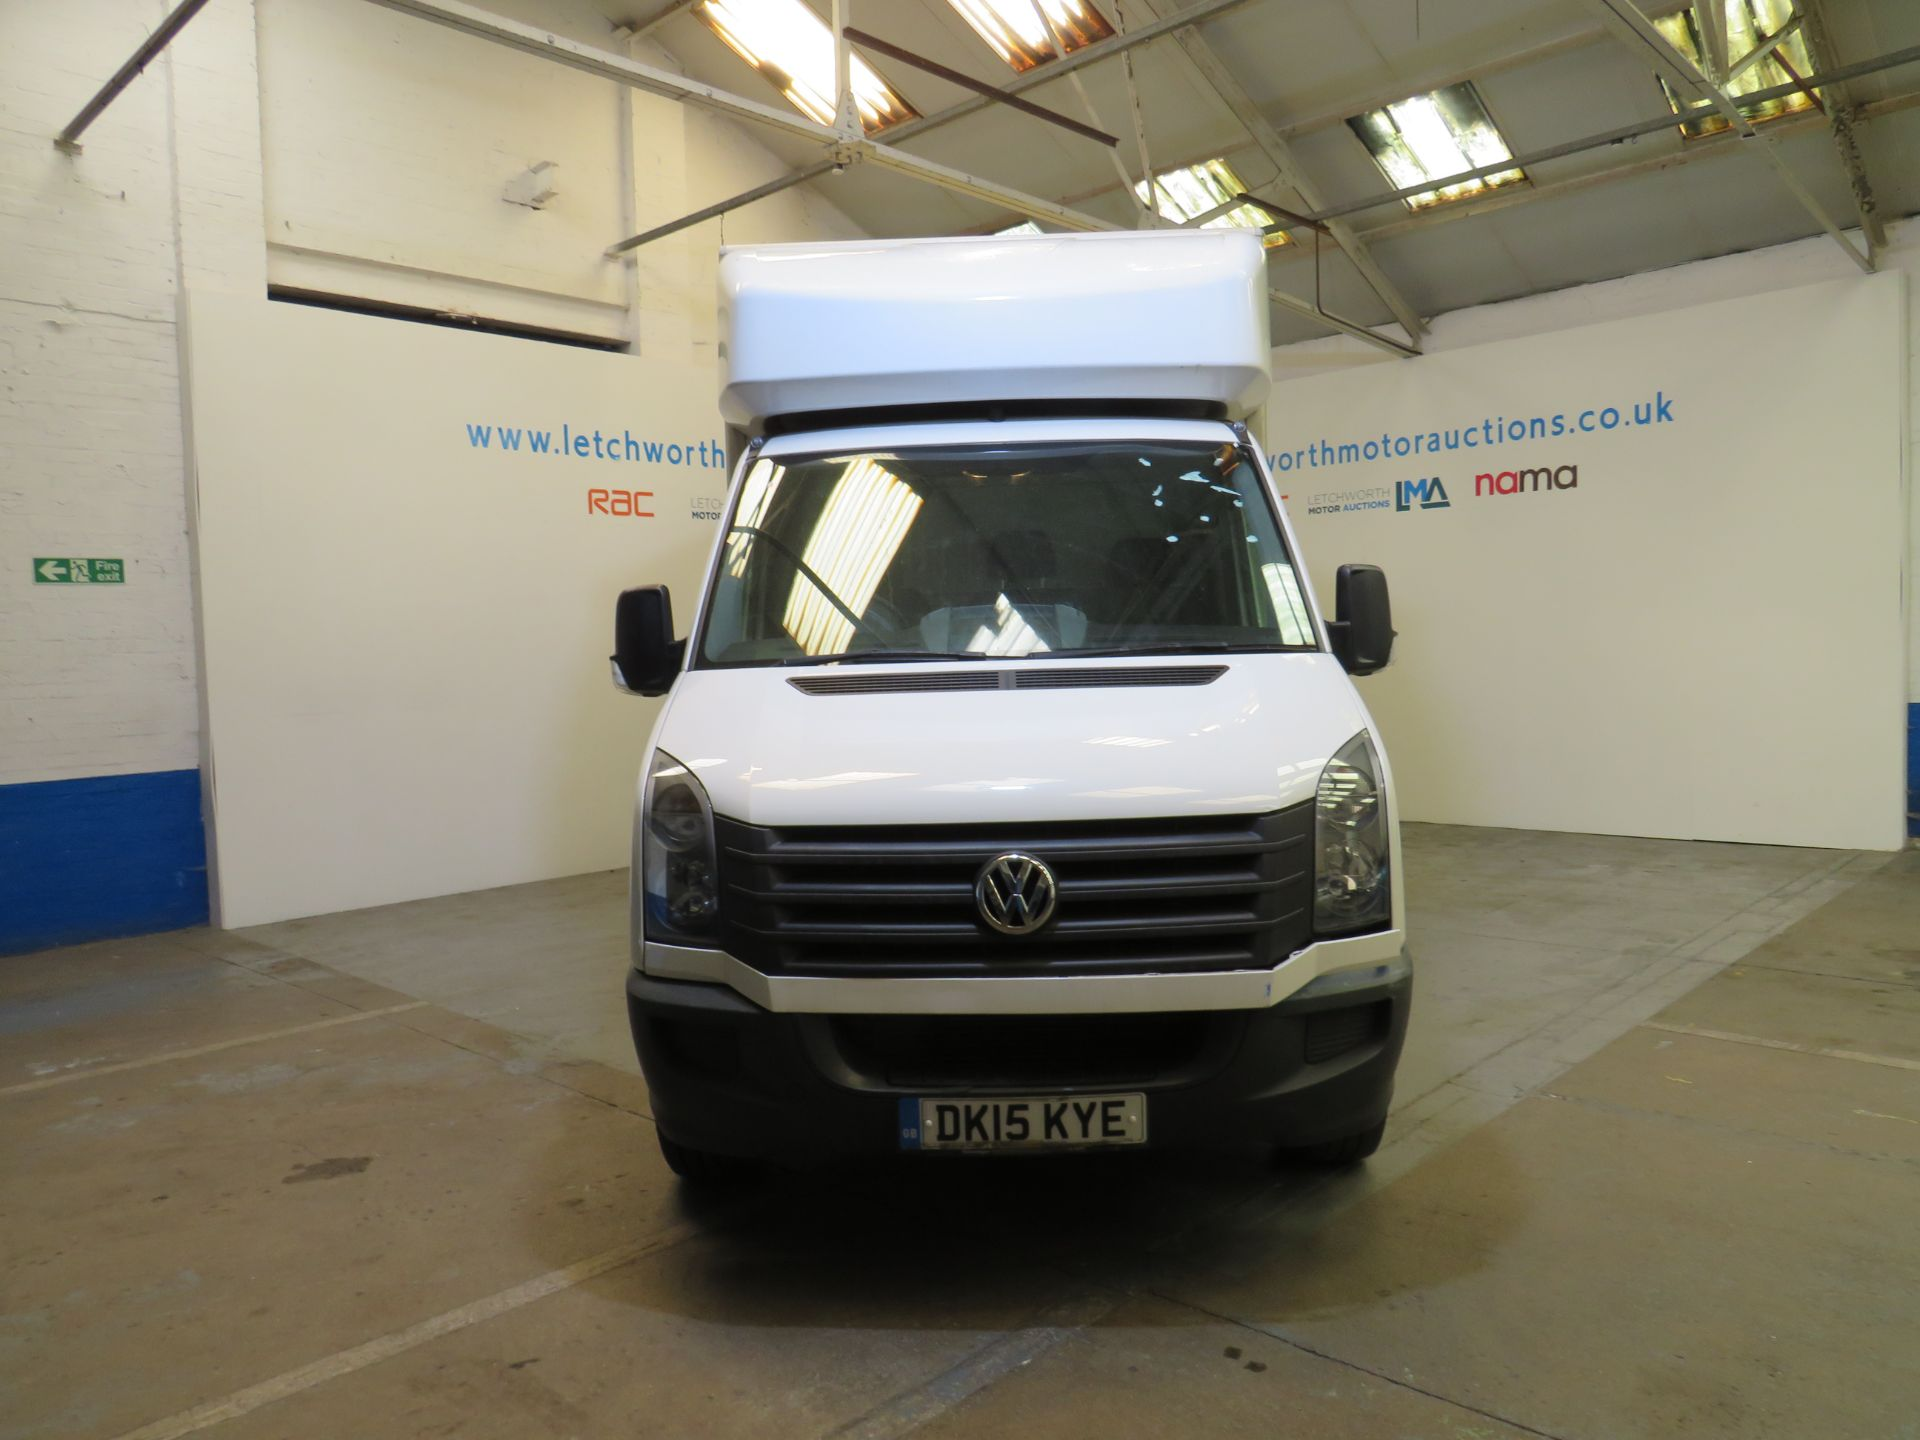 Lot 13 - 2015 Volkswagen Crafter CR35 TDI Luton Body - 1968cc